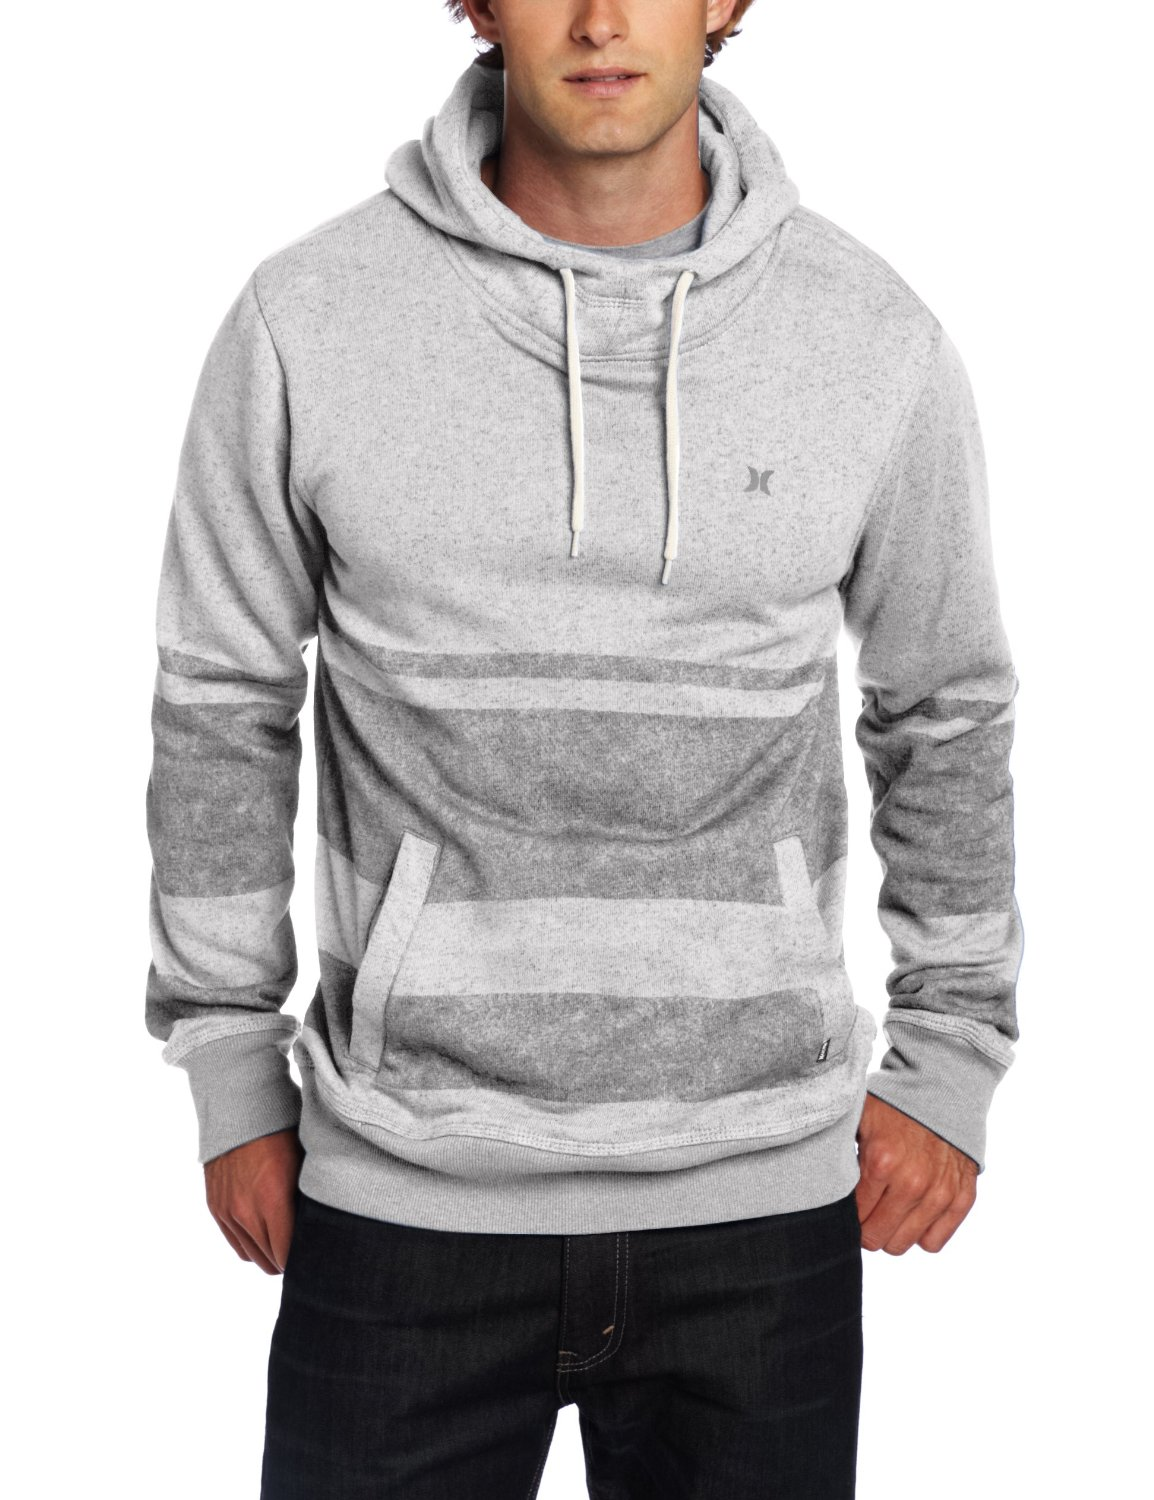 hoodies for men | Hoodies for Men